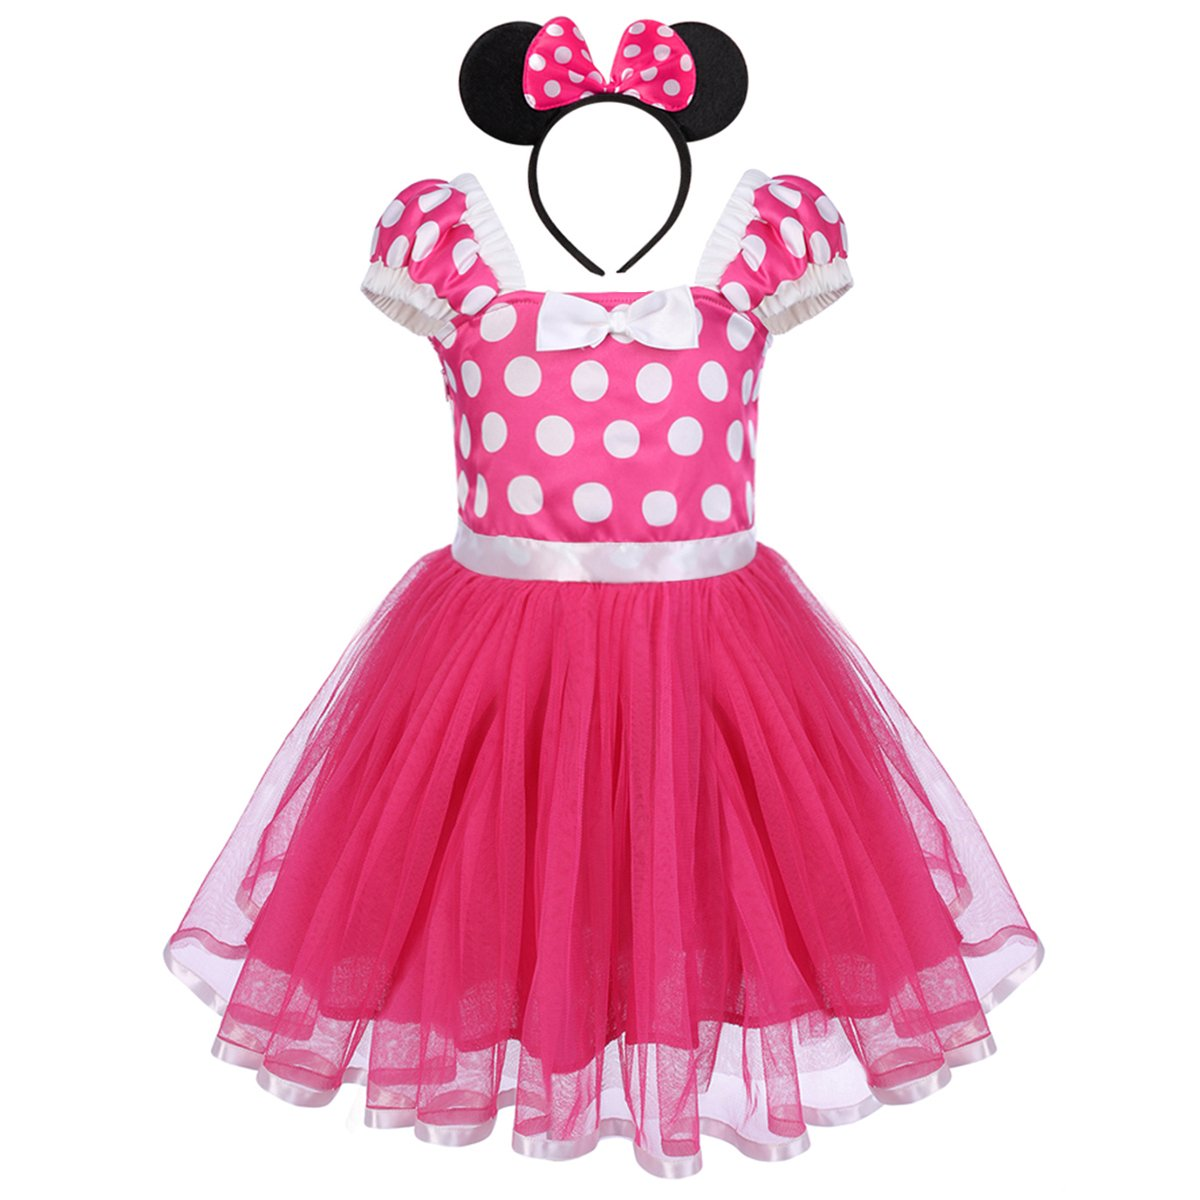 Infant Baby Toddlers Girls Christmas Polka Dots Leotard Birthday Princess Bowknot Tutu Dress Xmas Cosplay Pageant Cute Mouse Dress up Halloween Fancy Costume Party Outfits with Headband 0-8 Years